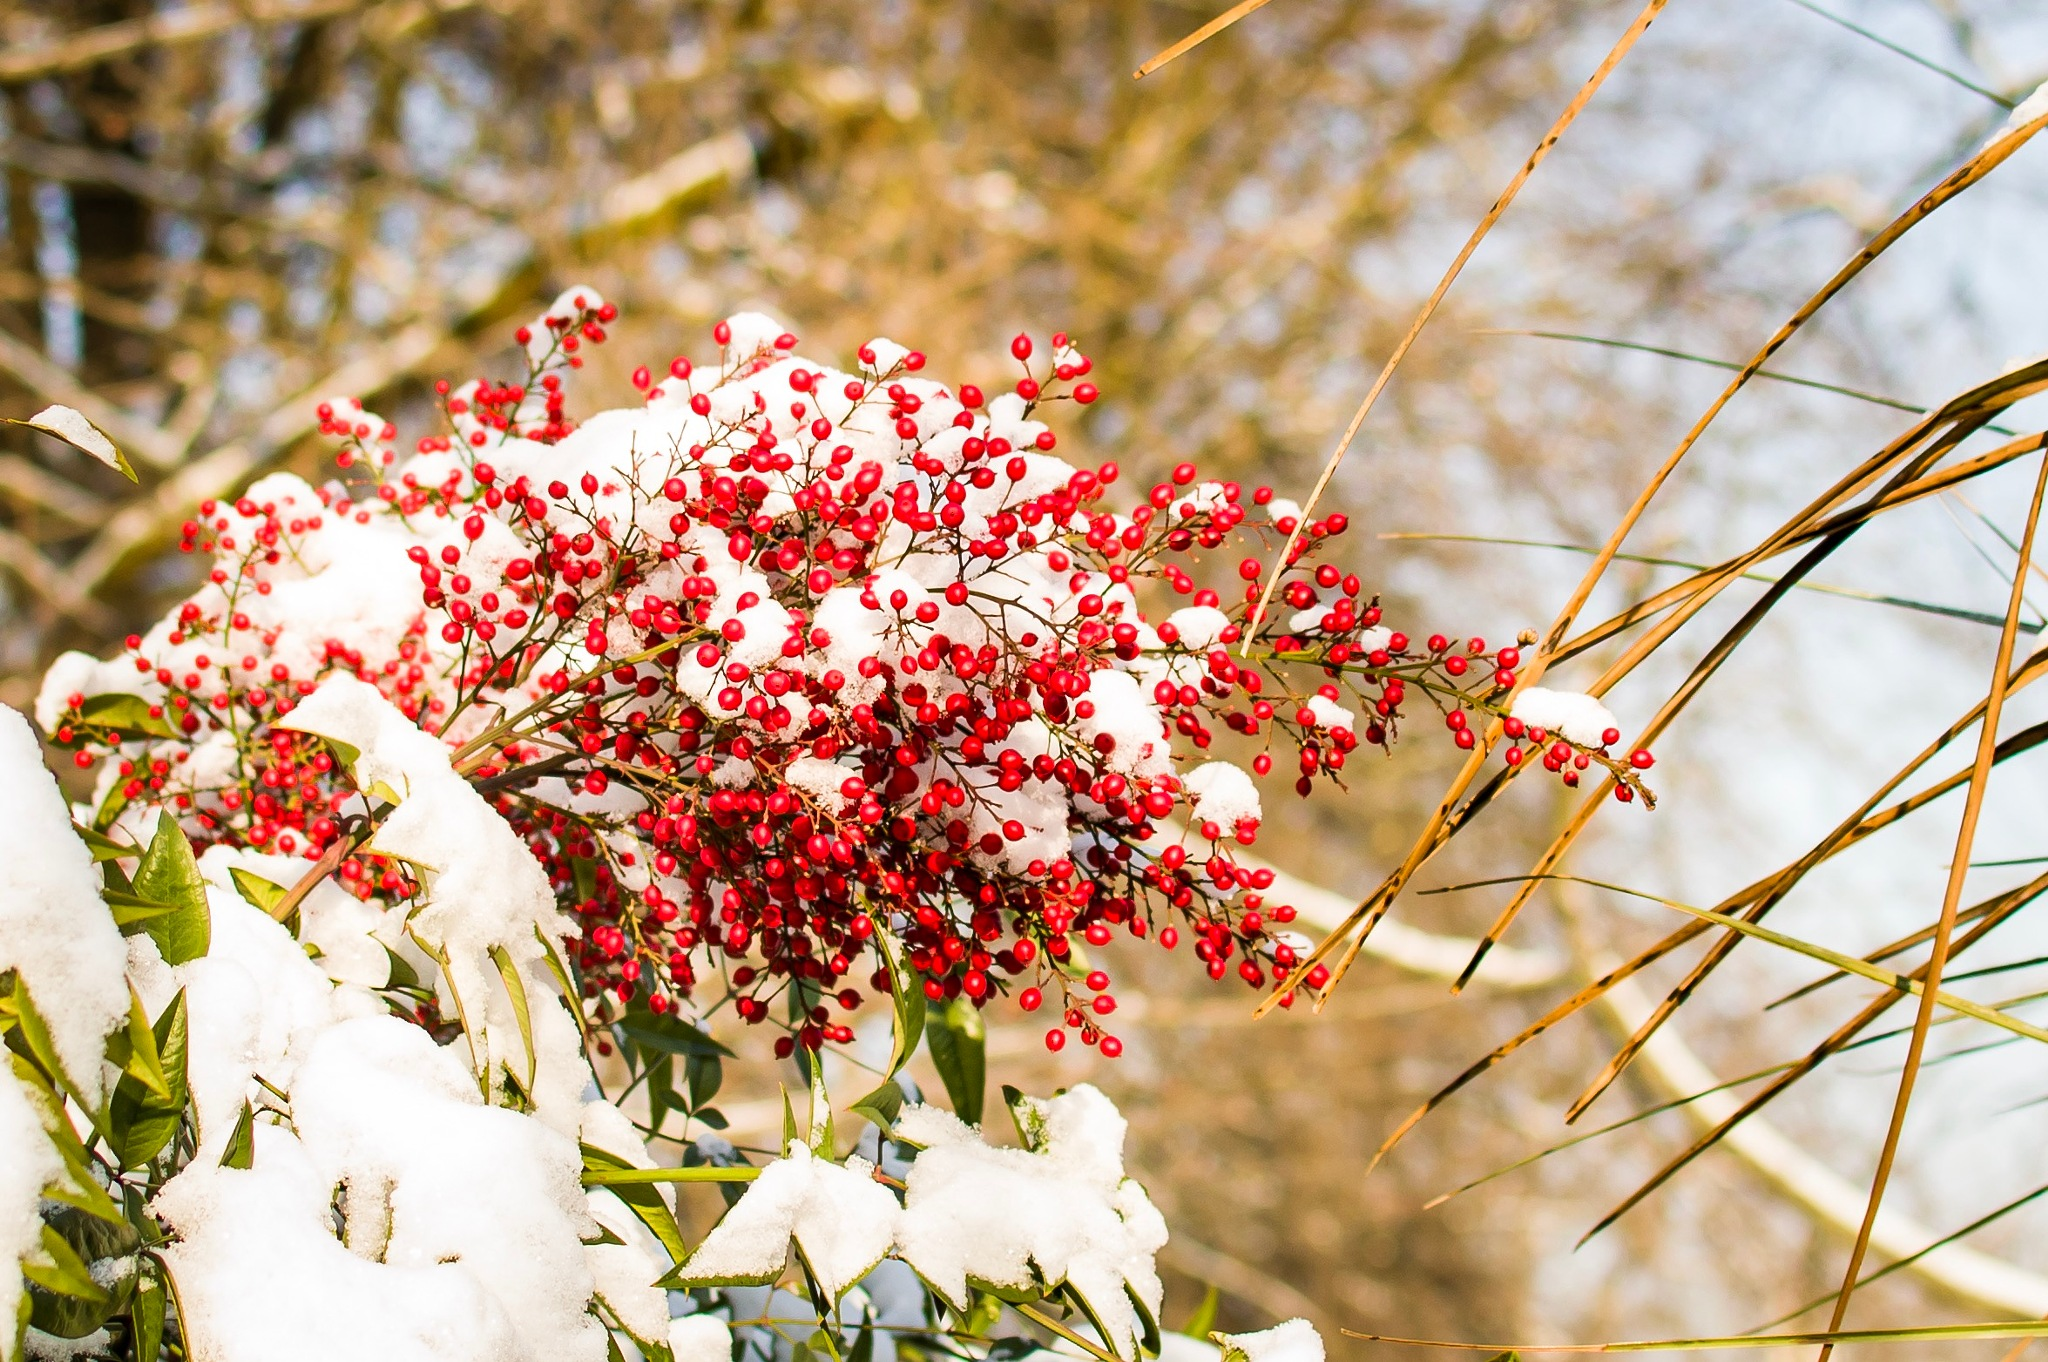 Snow on red by tatyanapetkovag4